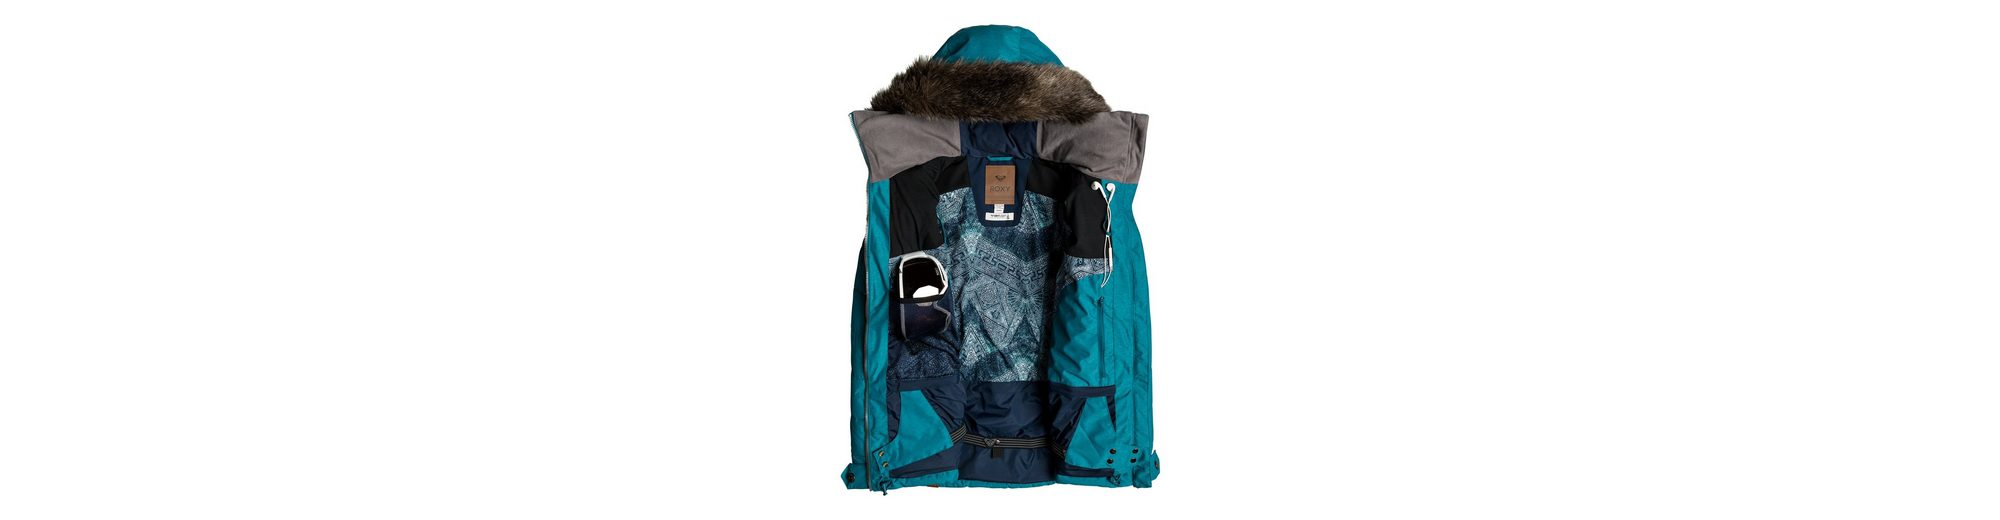 Drop-Shipping Roxy Snow Jacke Quinn 100% Garantiert Erkunden Online Verkauf Footaction Billig Authentische ic5lFiq